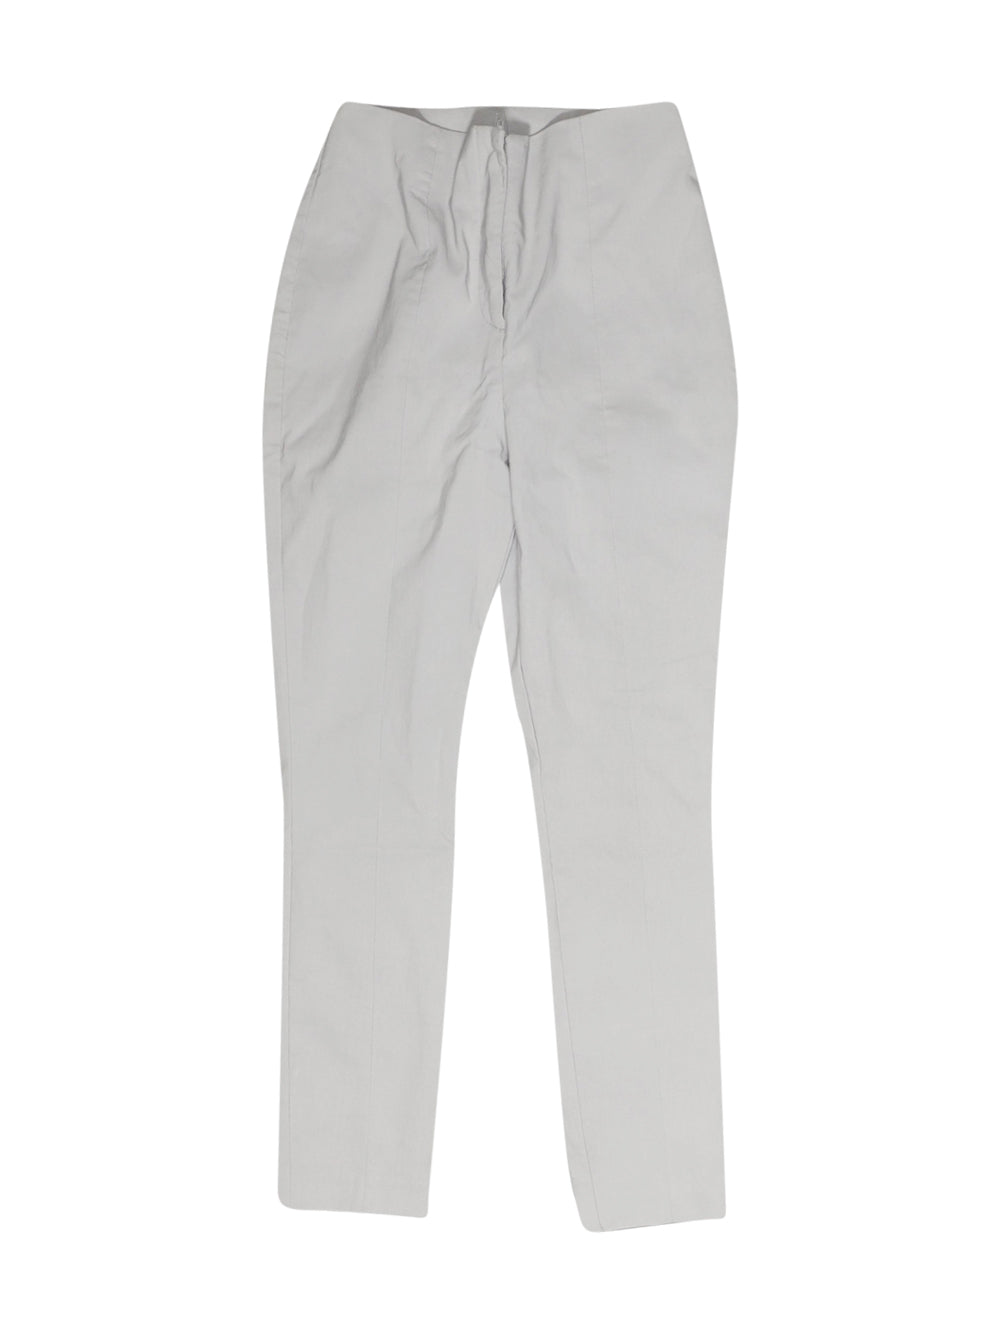 Front photo of Preloved Asos Grey Woman's trousers - size 6/XS